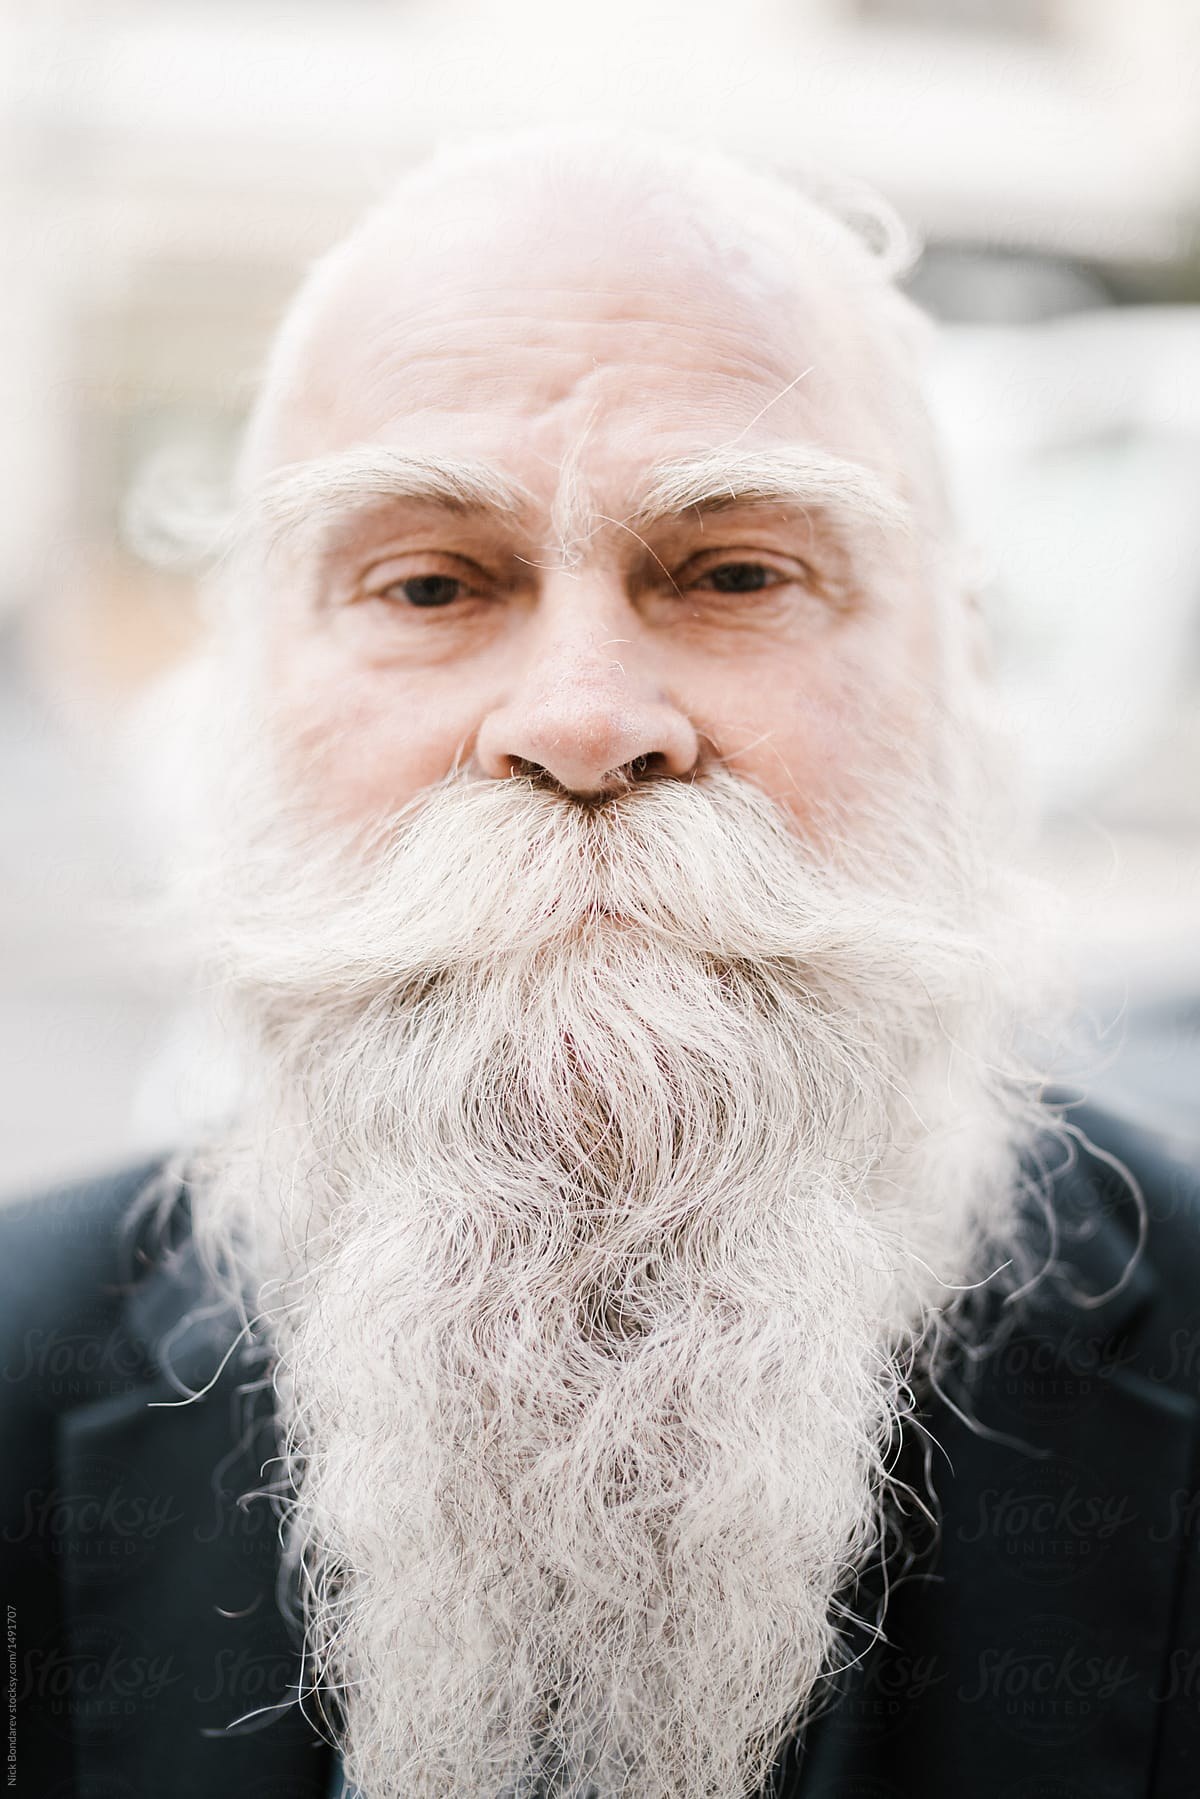 Astonishing Close Up Portrait Of Old Man With White Gray Haired Beard Looking Schematic Wiring Diagrams Phreekkolirunnerswayorg